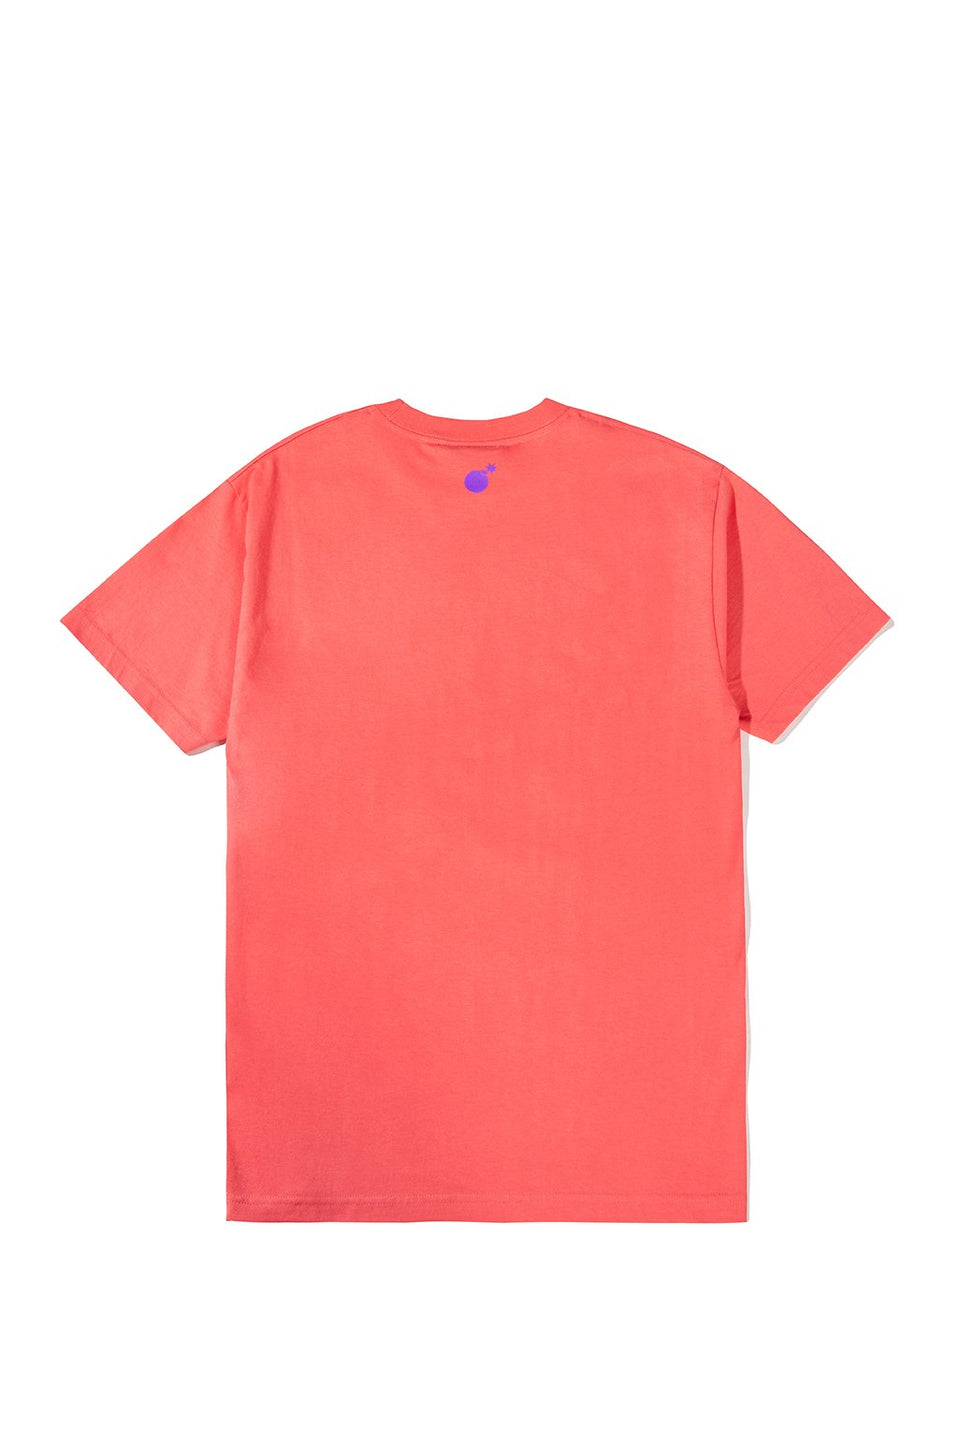 The Hundreds Gloss T-Shirt TOPS Coral